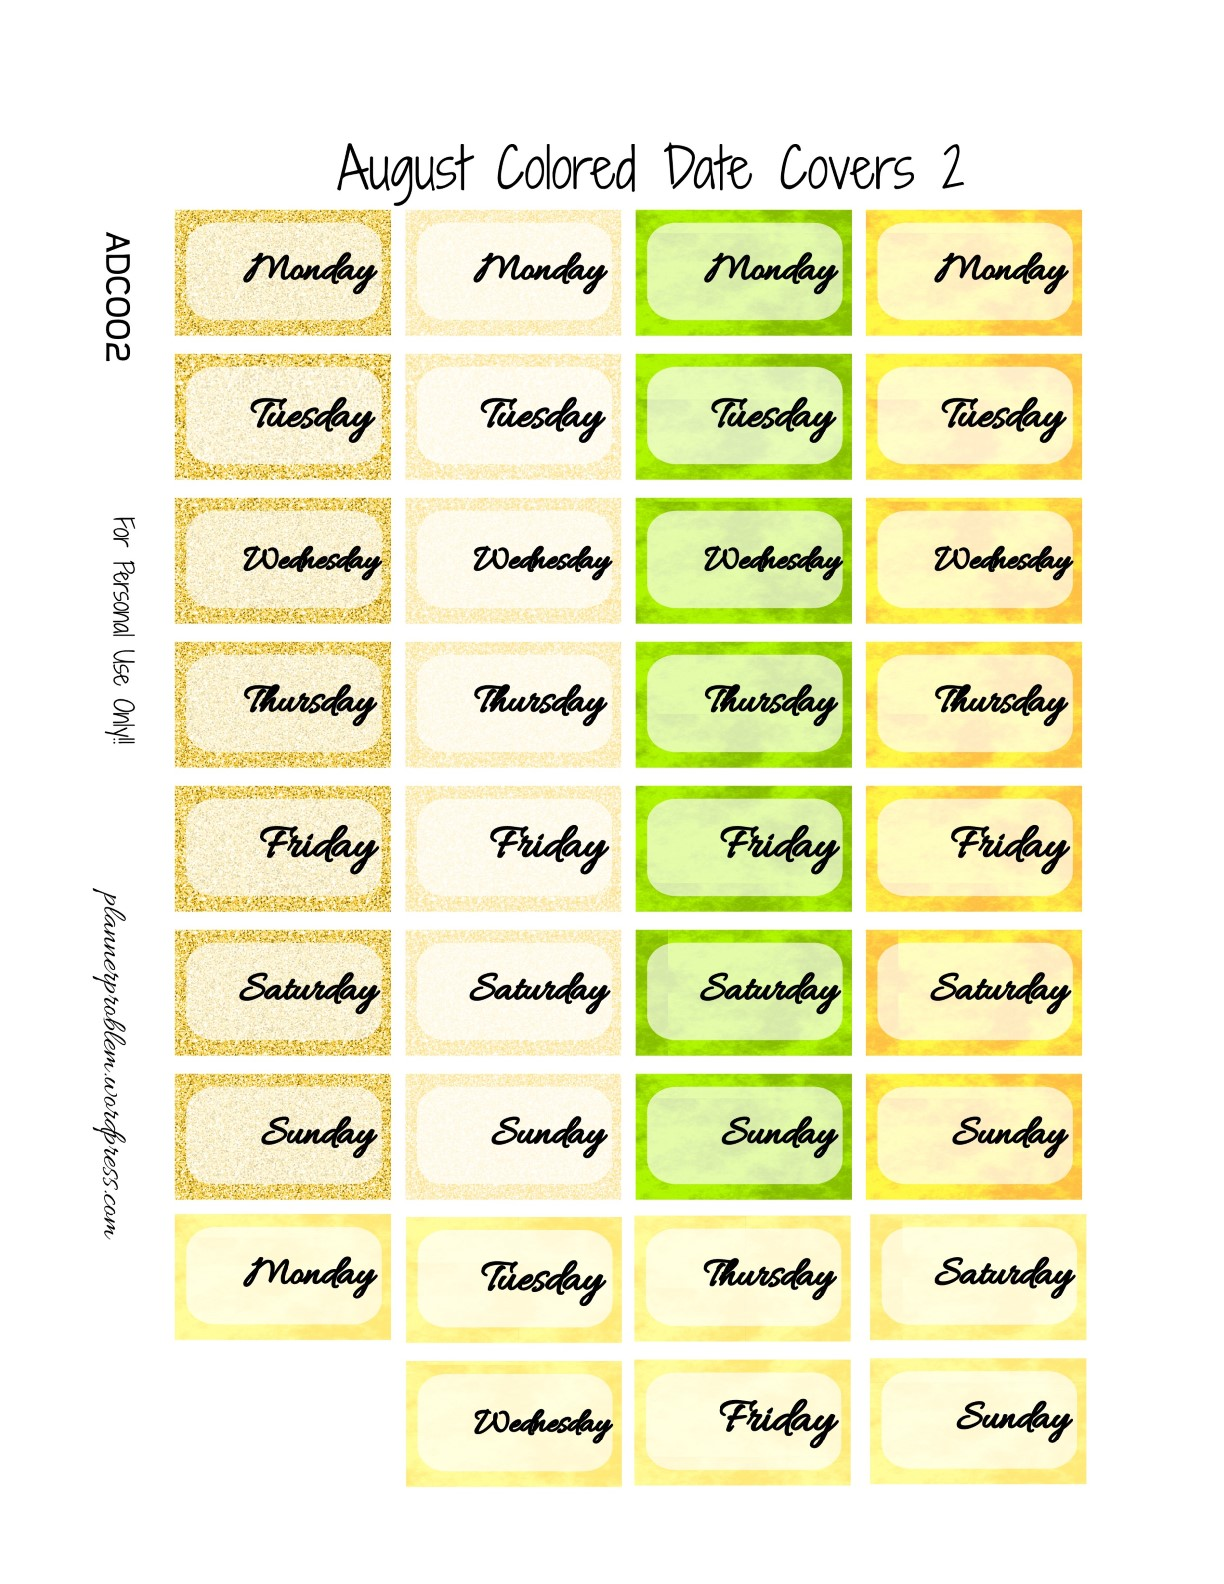 August Colored Date Covers! | Free Printable Planner ...